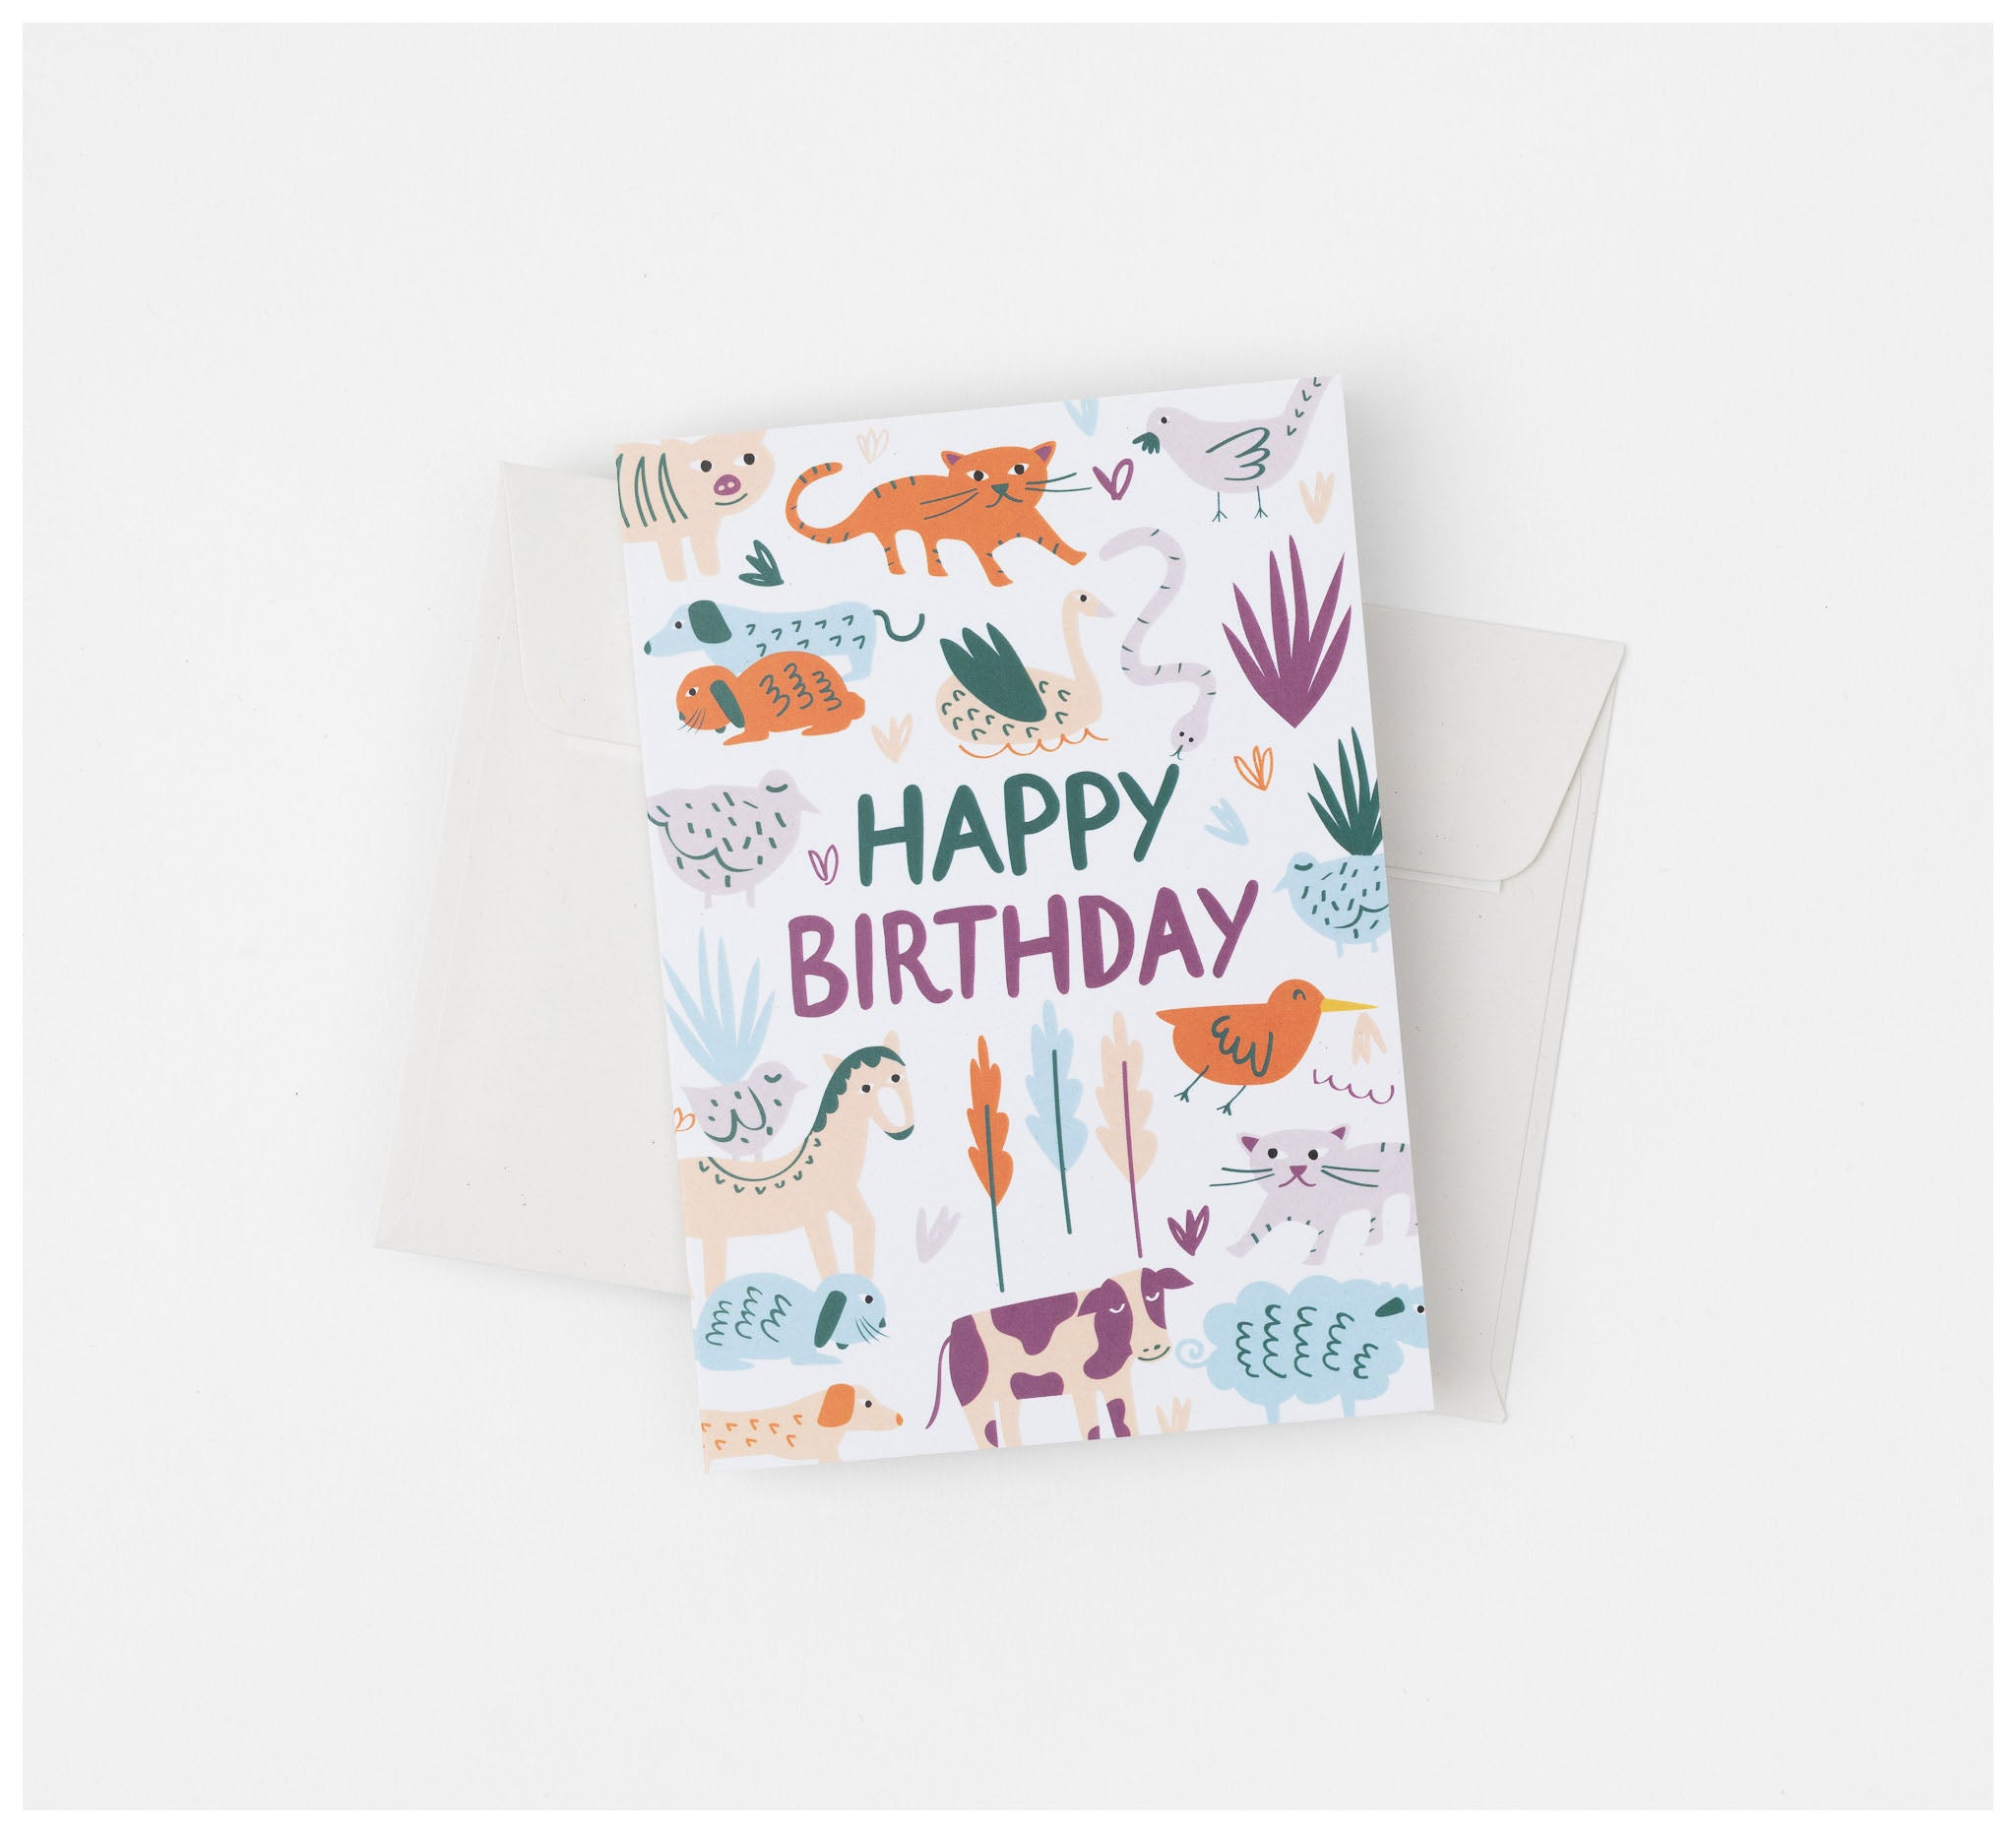 Fabric Drawer - Greeting Cards - Set of 5 (mix and match) - Recycled Card and Envelope